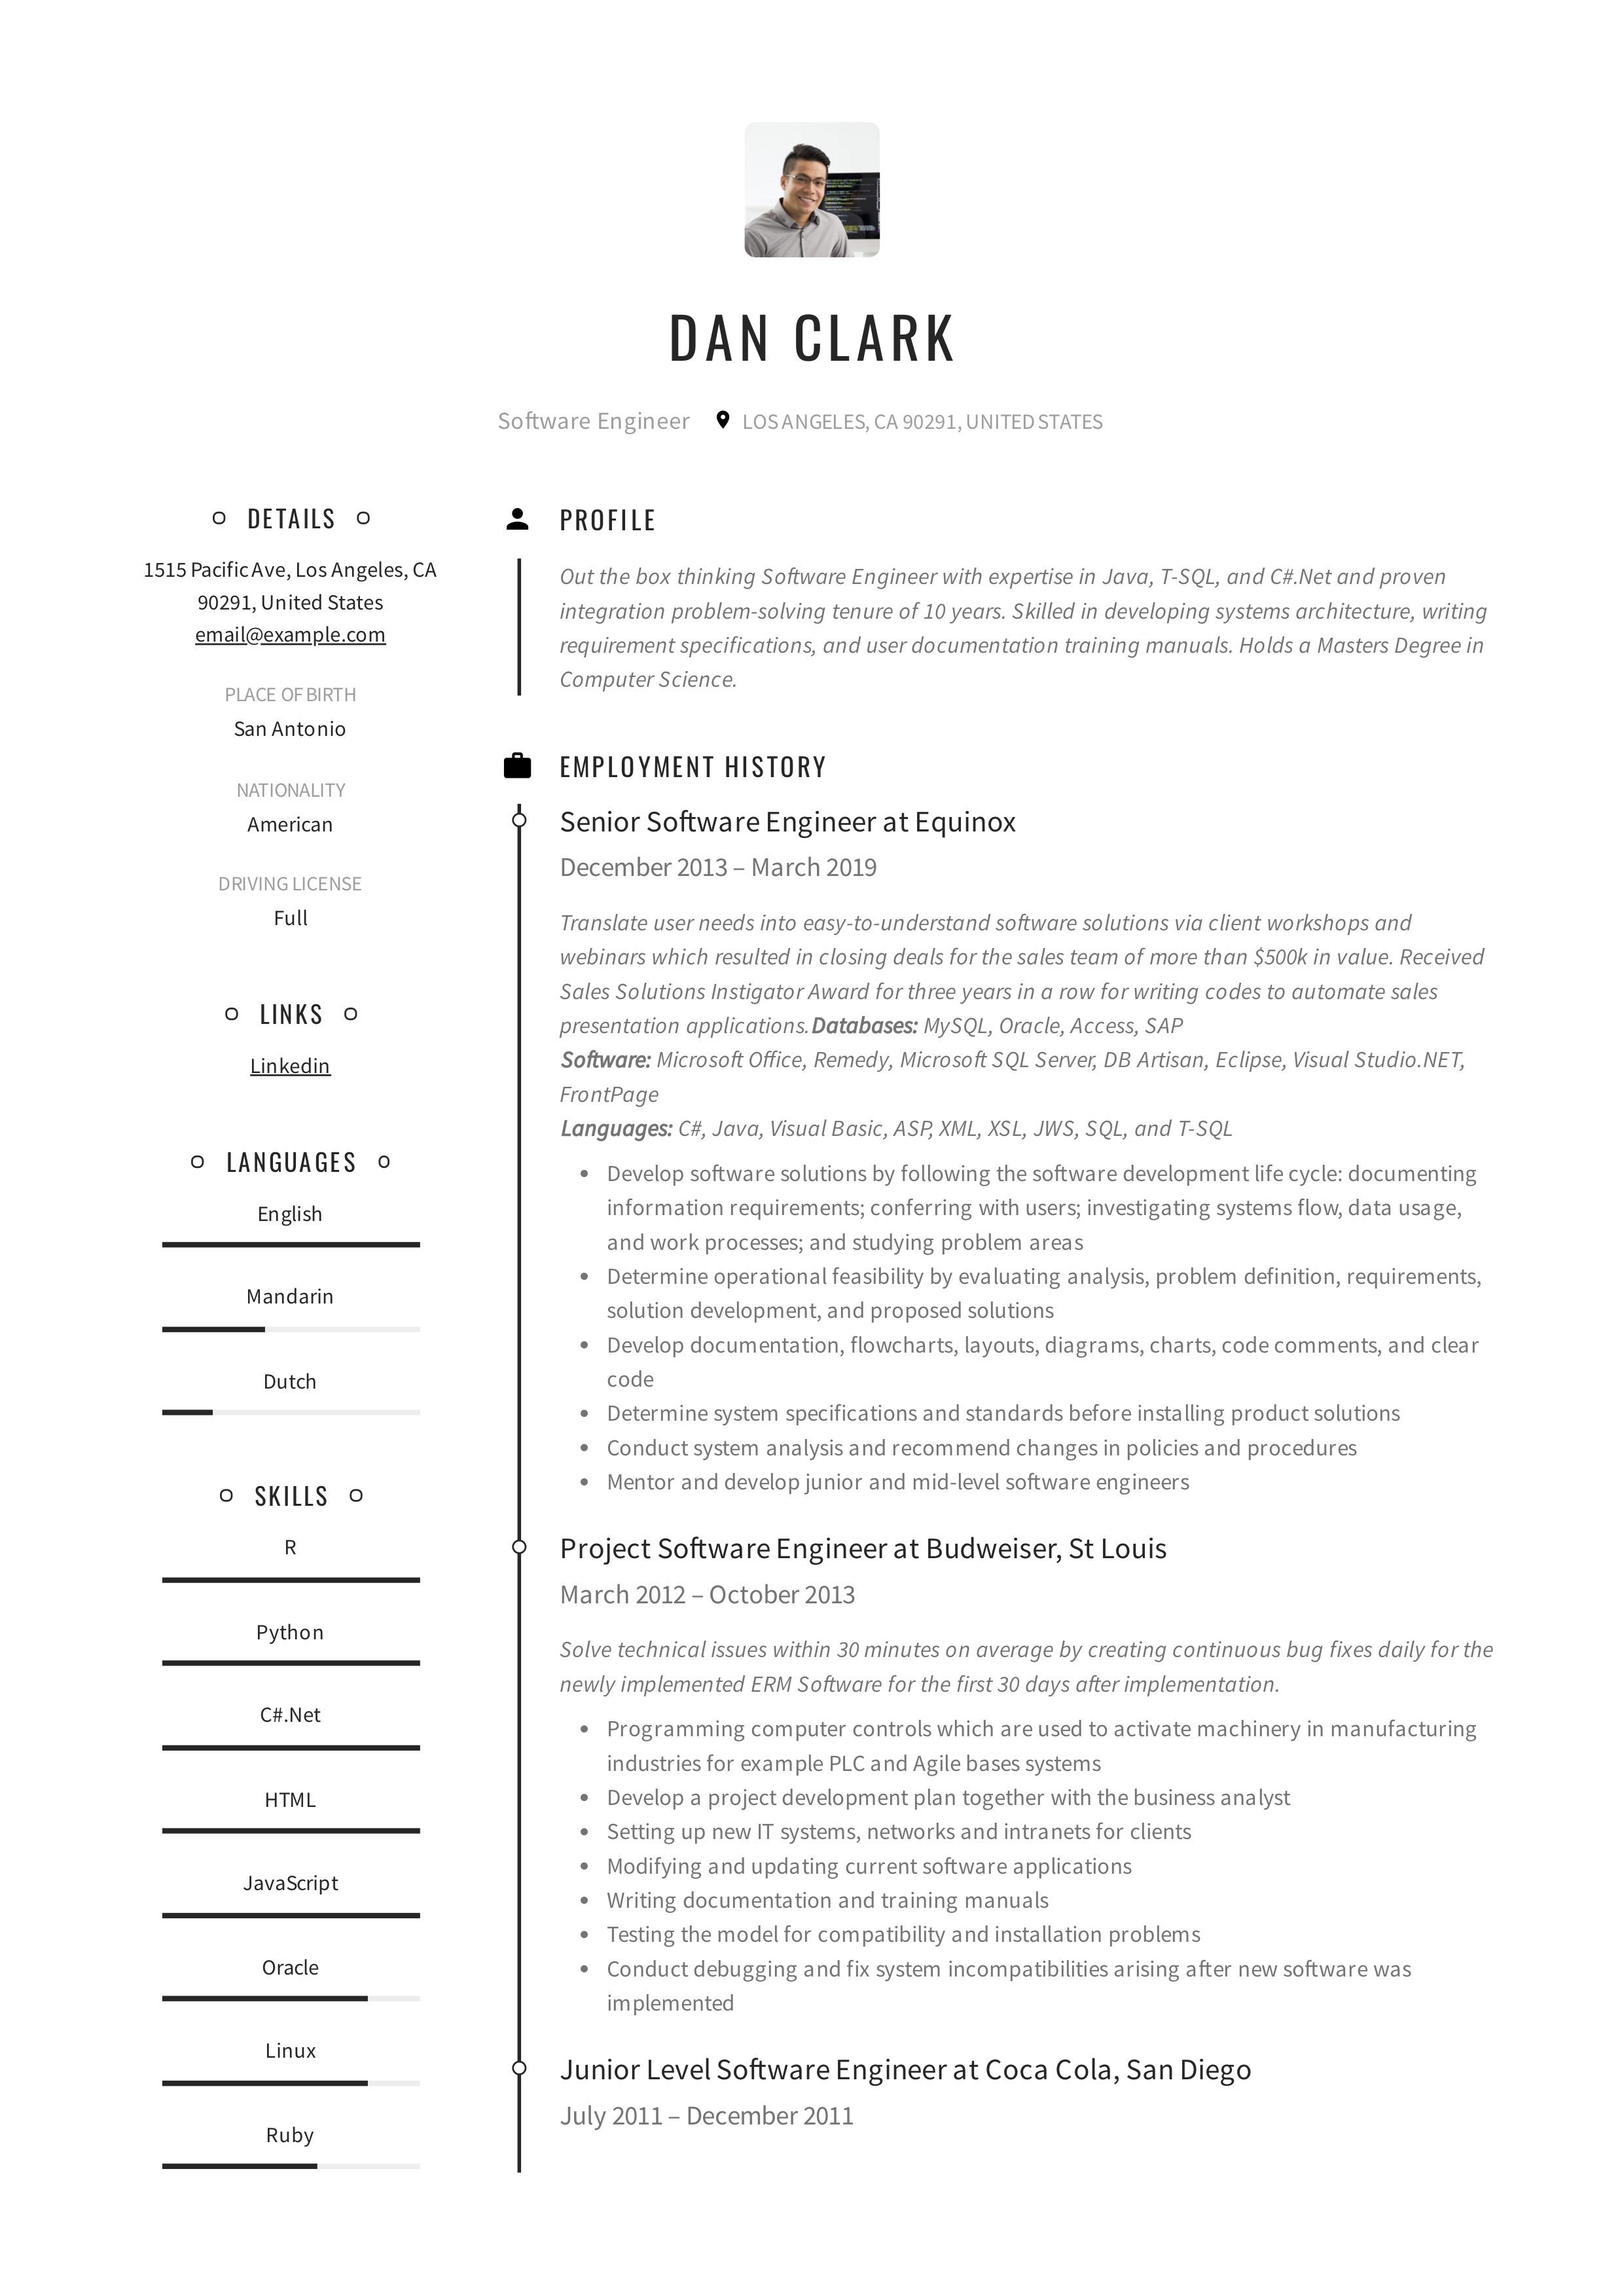 Resume Templates 2020 Pdf And Word Free Downloads